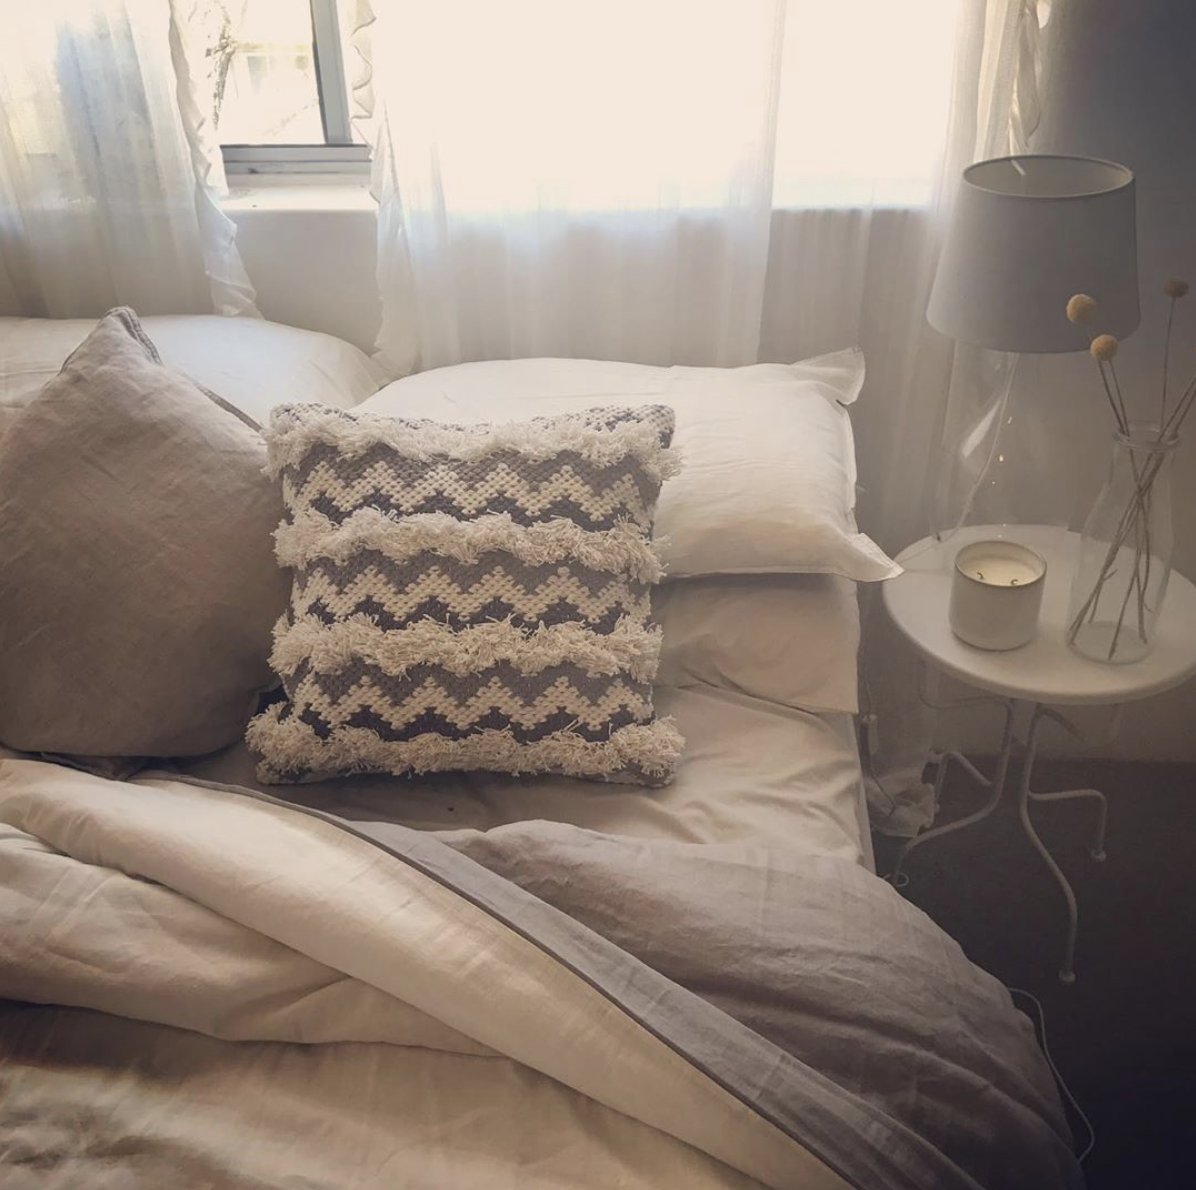 I'm in love with this linen, cushion and dried billy buttons combo, so simple yet so lovely! #bedroomstyling #featurecushion #textiles #billybuttons #bedroom #interiordesign #lovestyling #bedroomstyling #thishumblehome